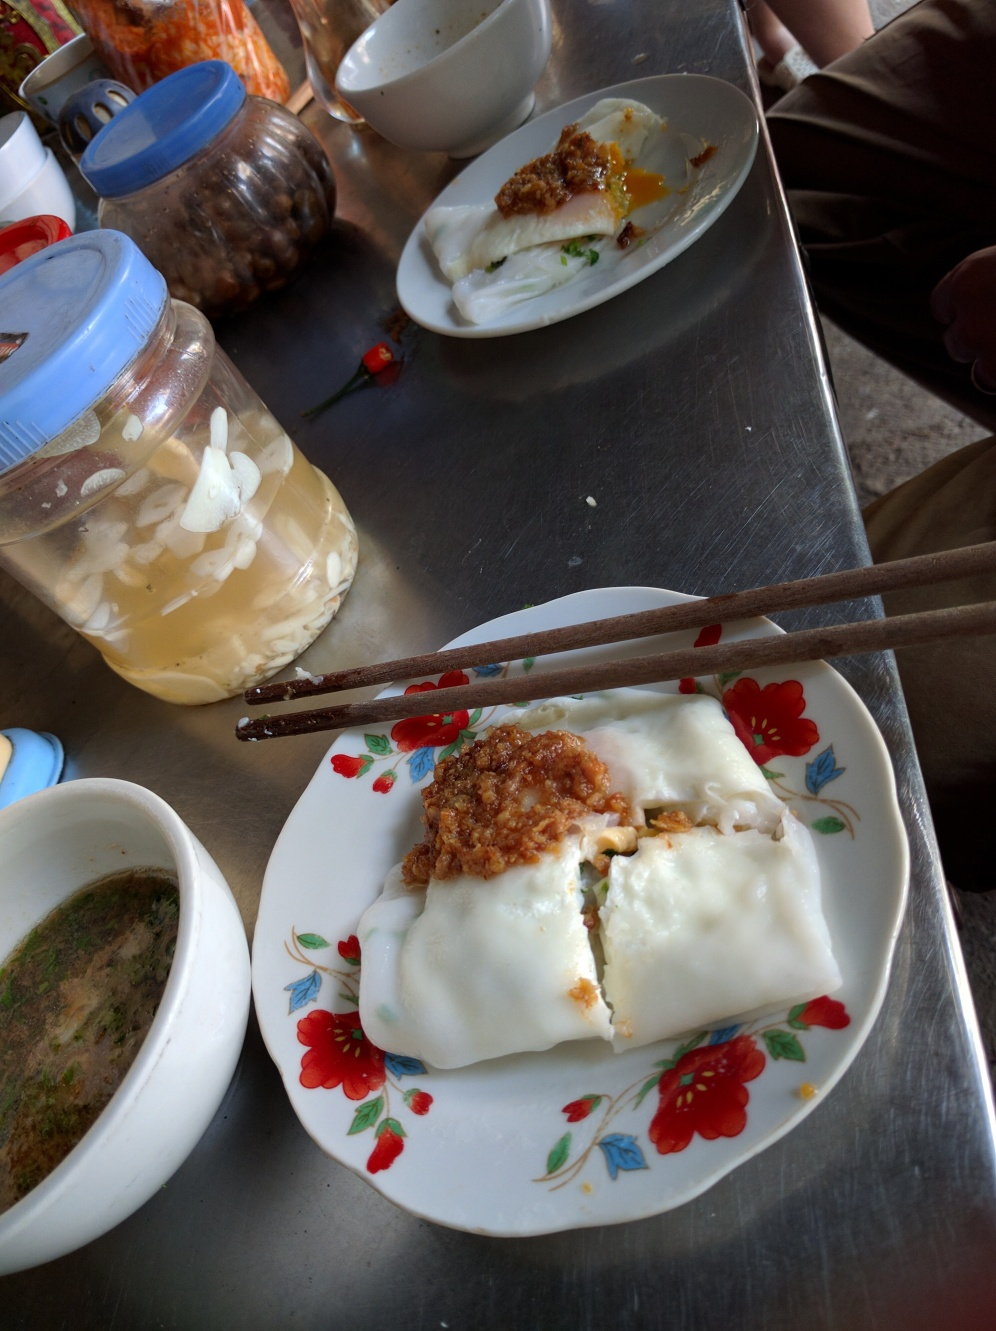 Ban Cuon - Rice Paper Crepes with pork inside